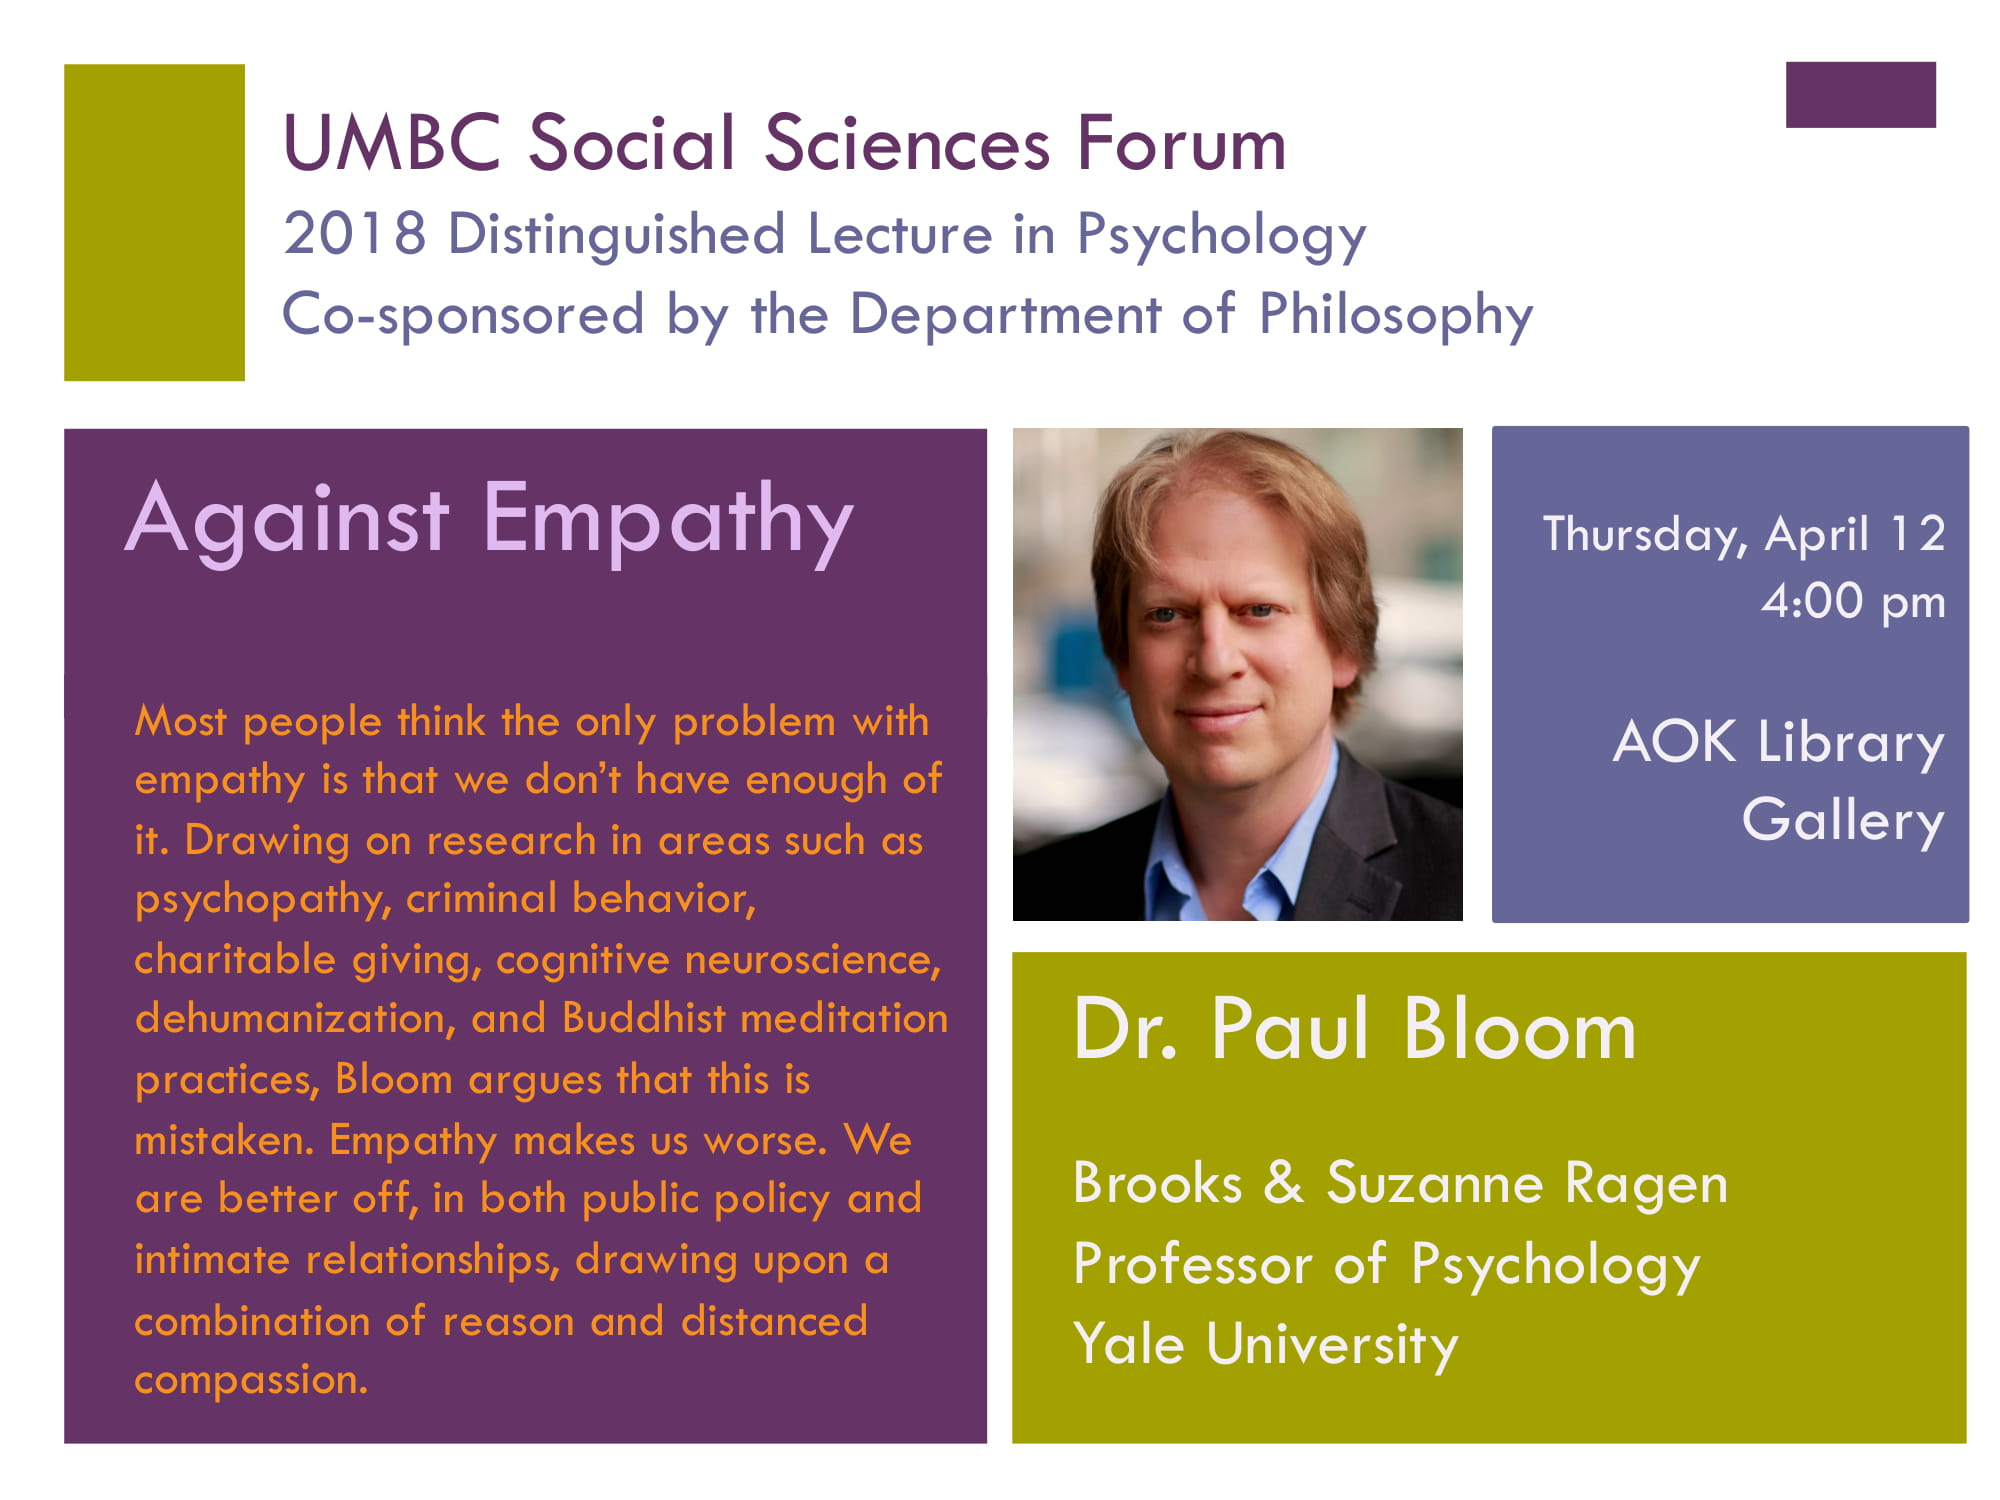 UMBC Social Sciences Forum